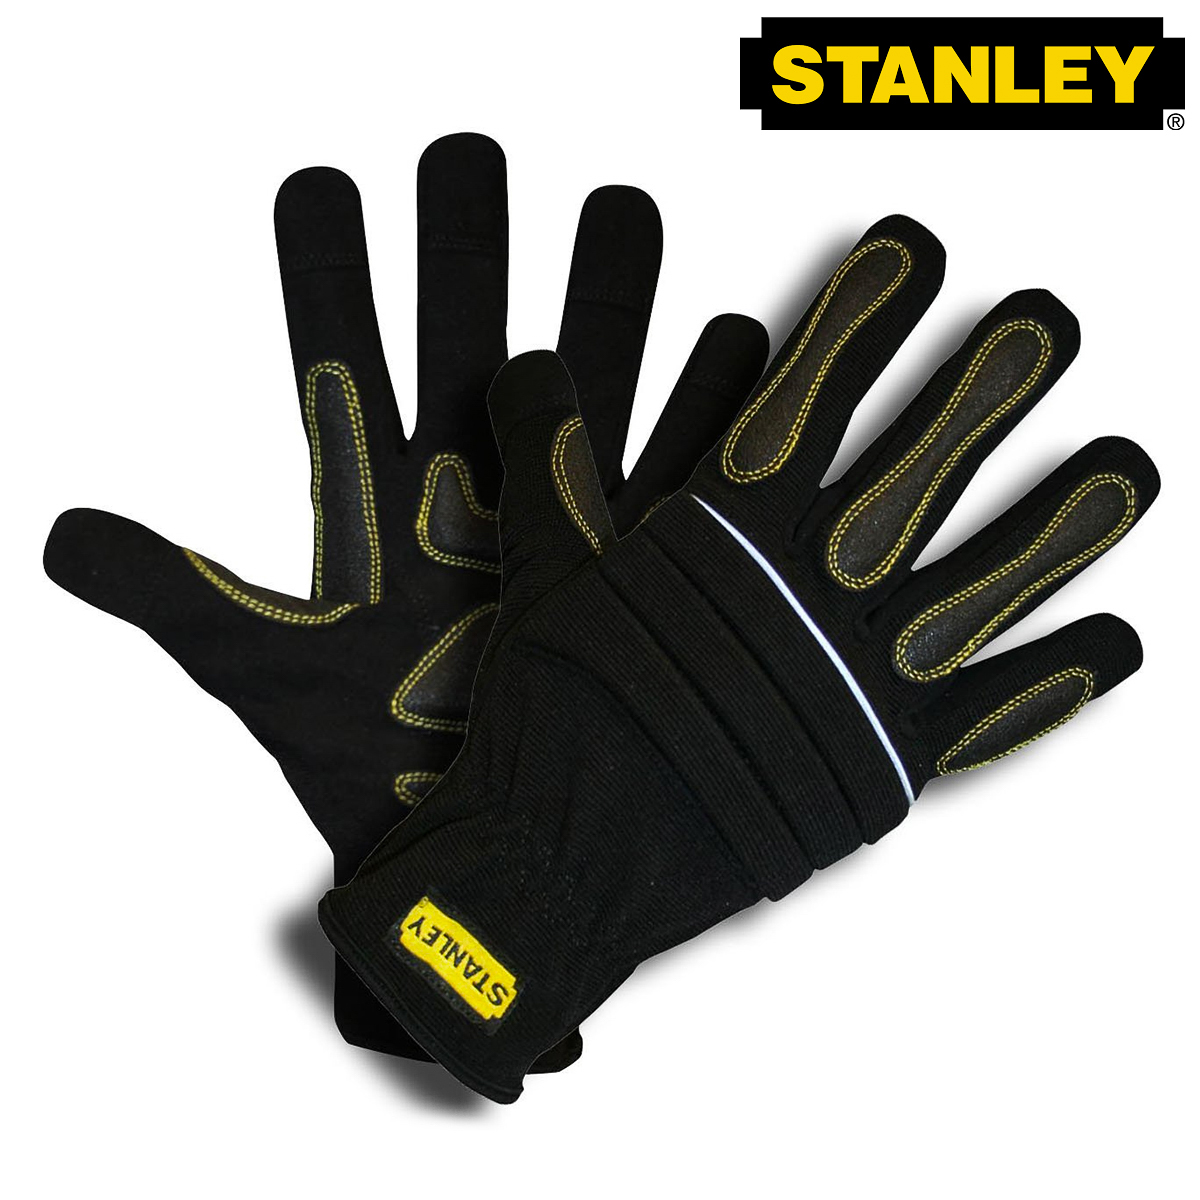 Stanley Prodex High Dexterity Work Gloves Synthetic Leather Contractor Gel Pad